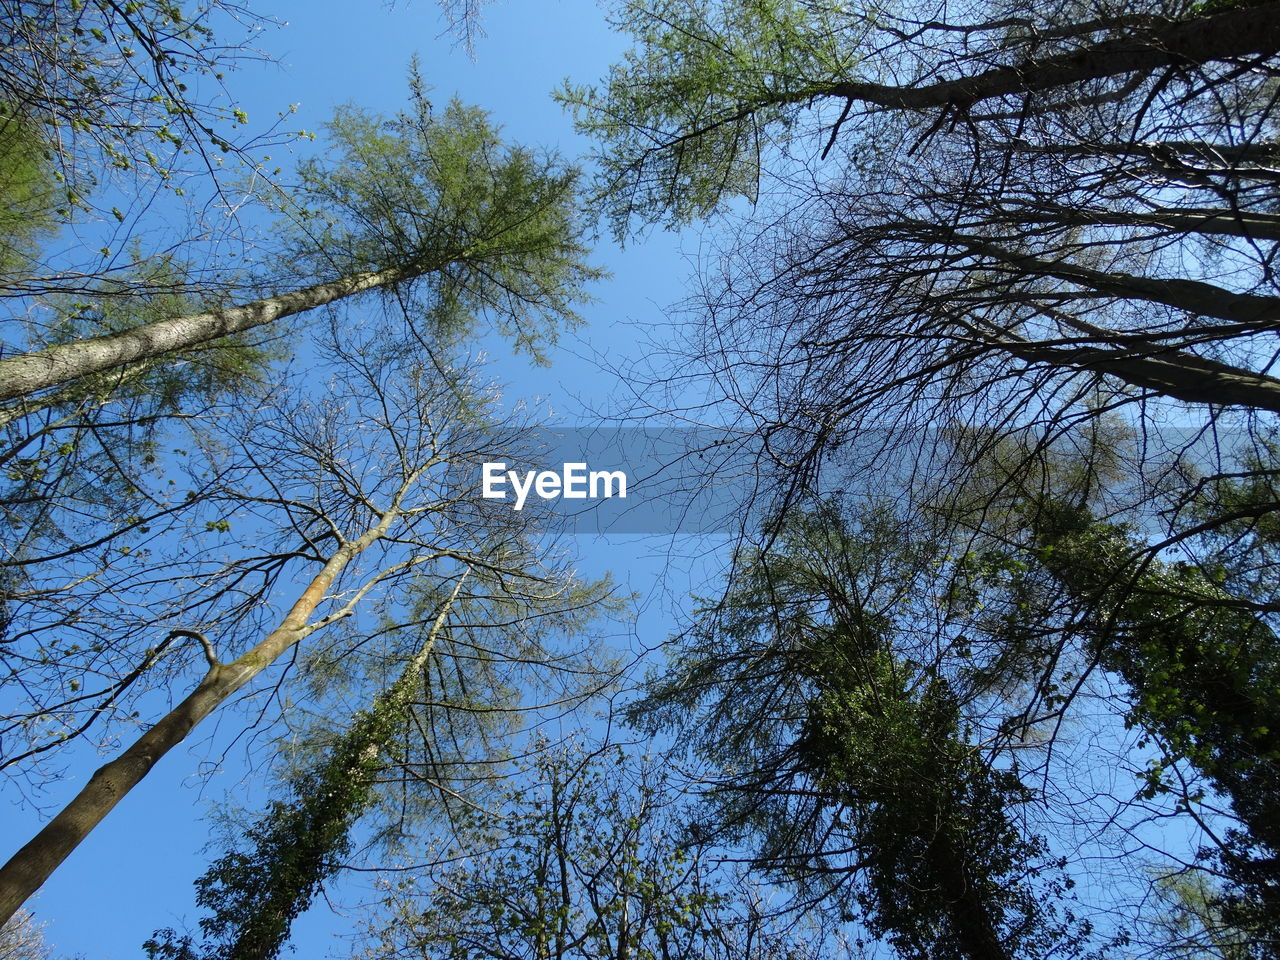 tree, low angle view, nature, branch, growth, beauty in nature, no people, outdoors, day, forest, sky, clear sky, scenics